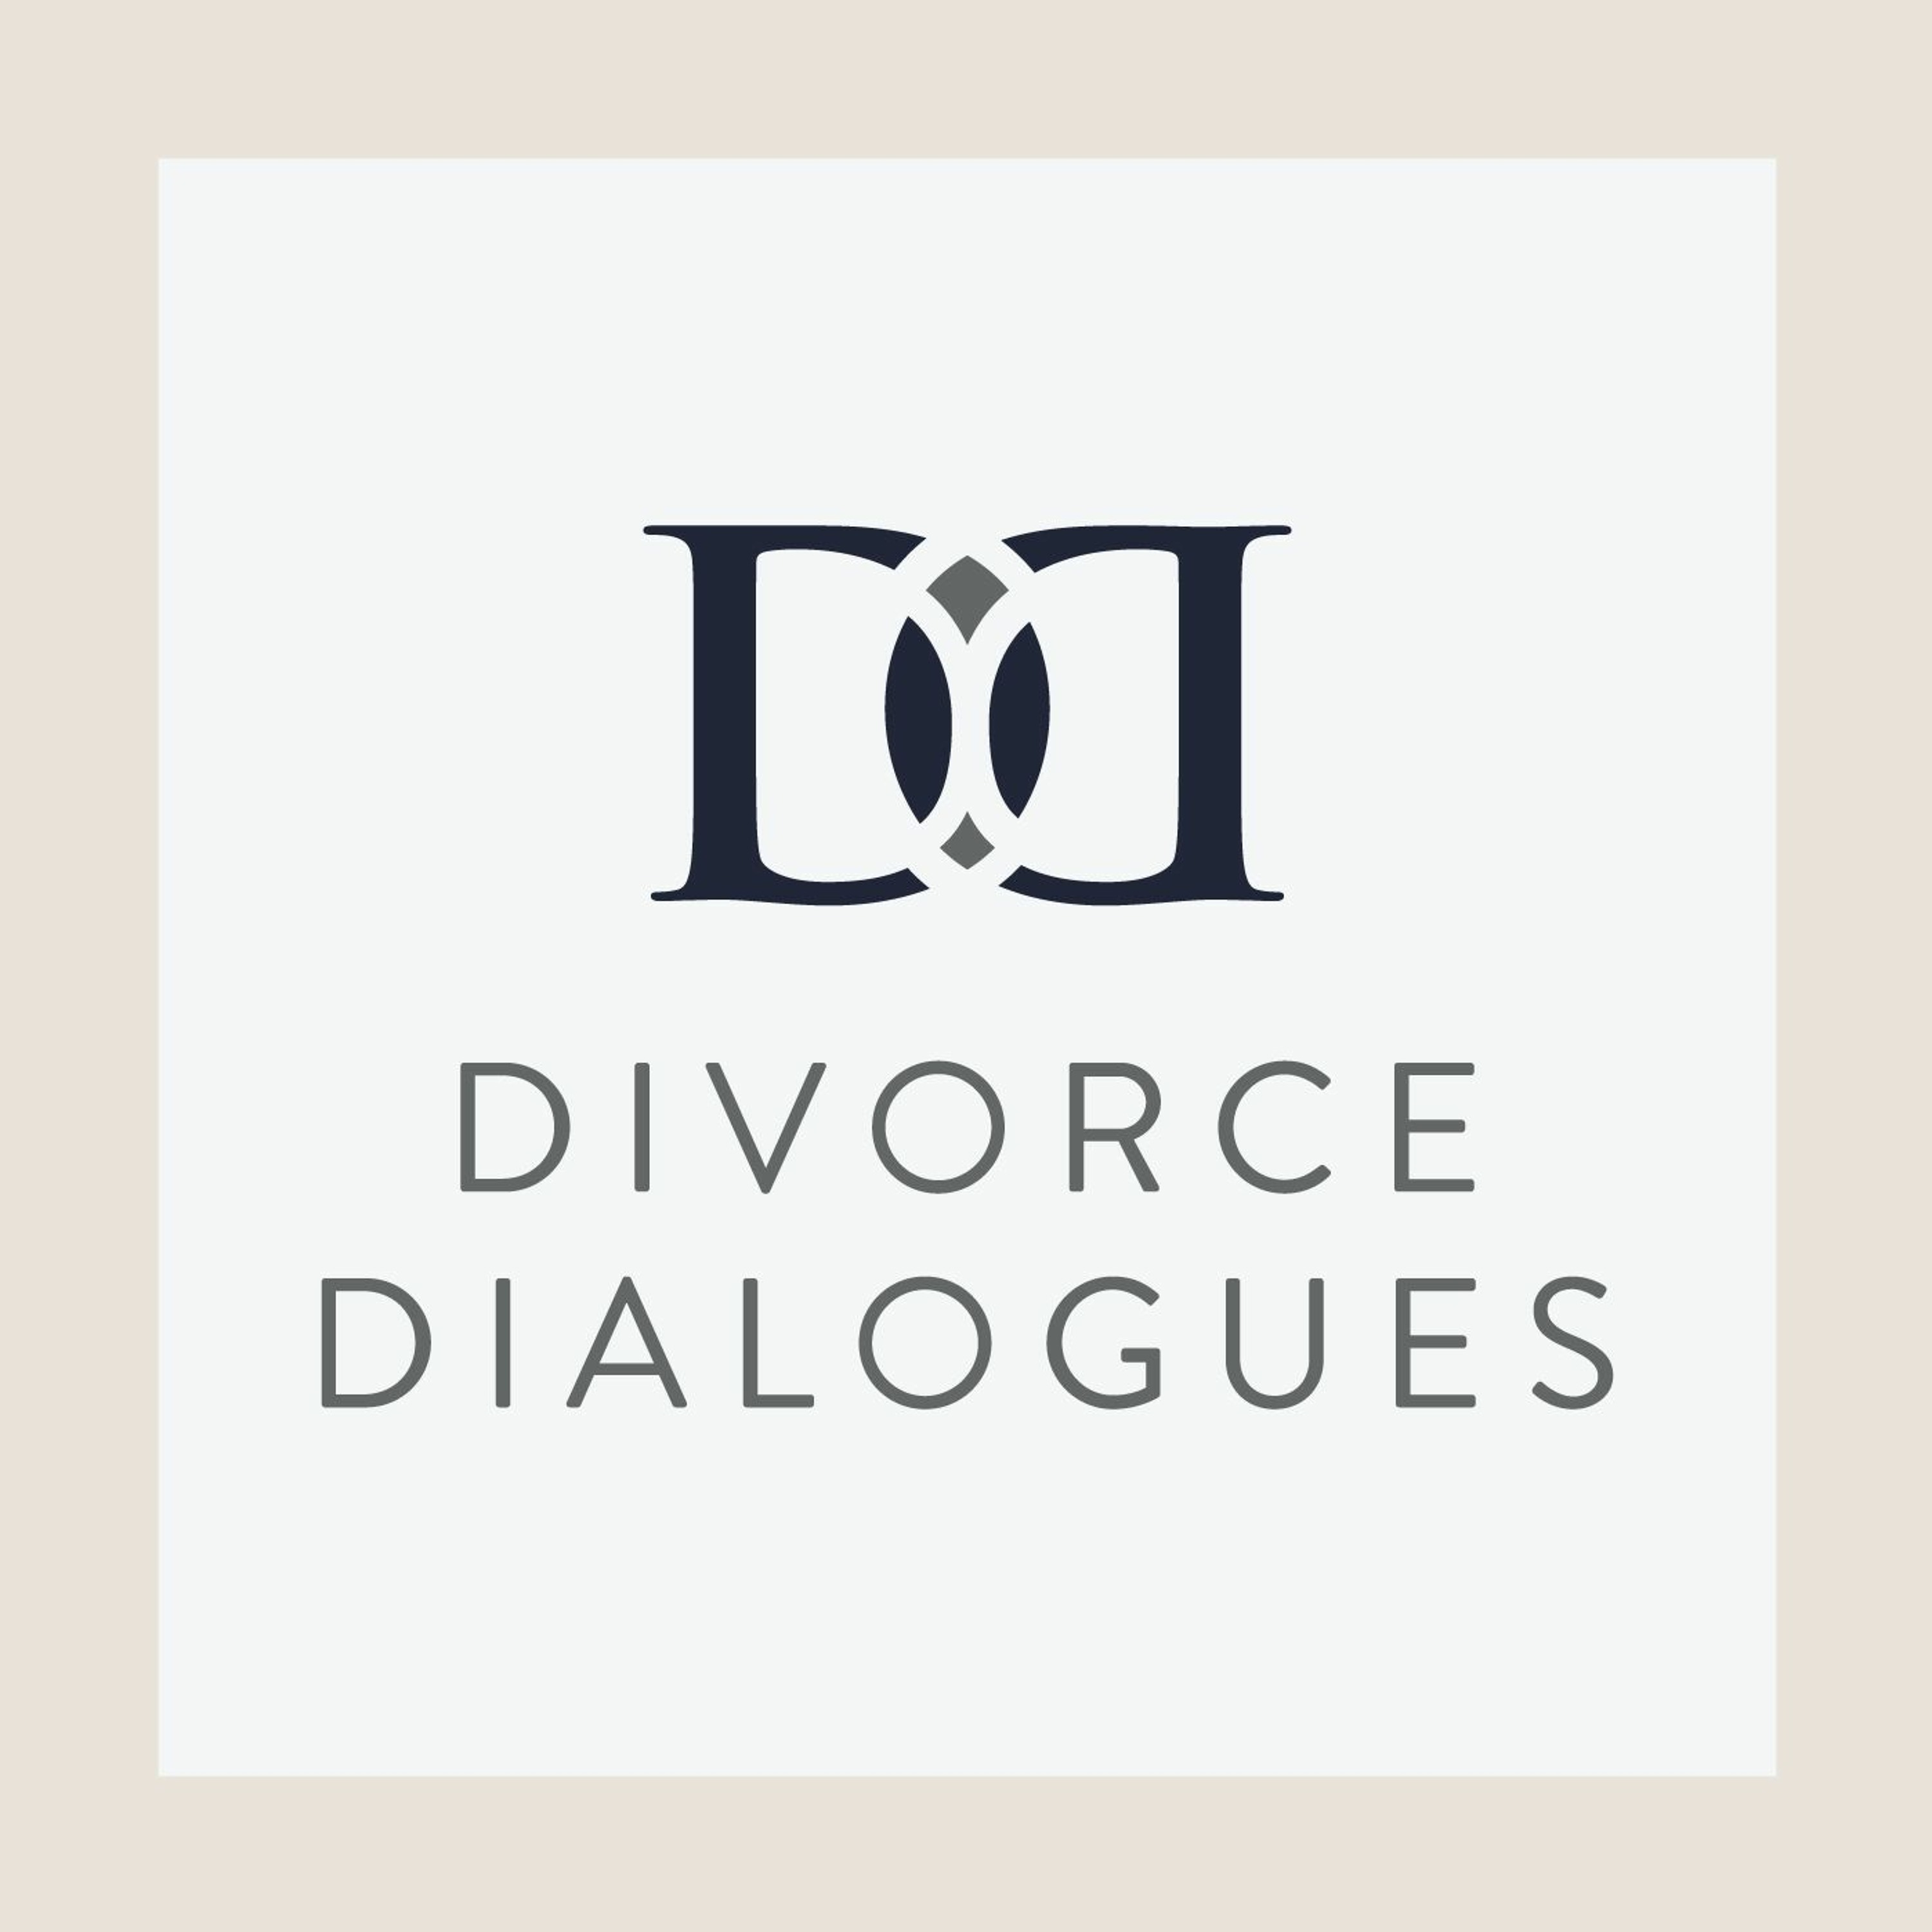 Divorce Dialogues - Parenting Strategies to Help Children Thrive Through Divorce with Dr. Joanne Pedro-Carroll